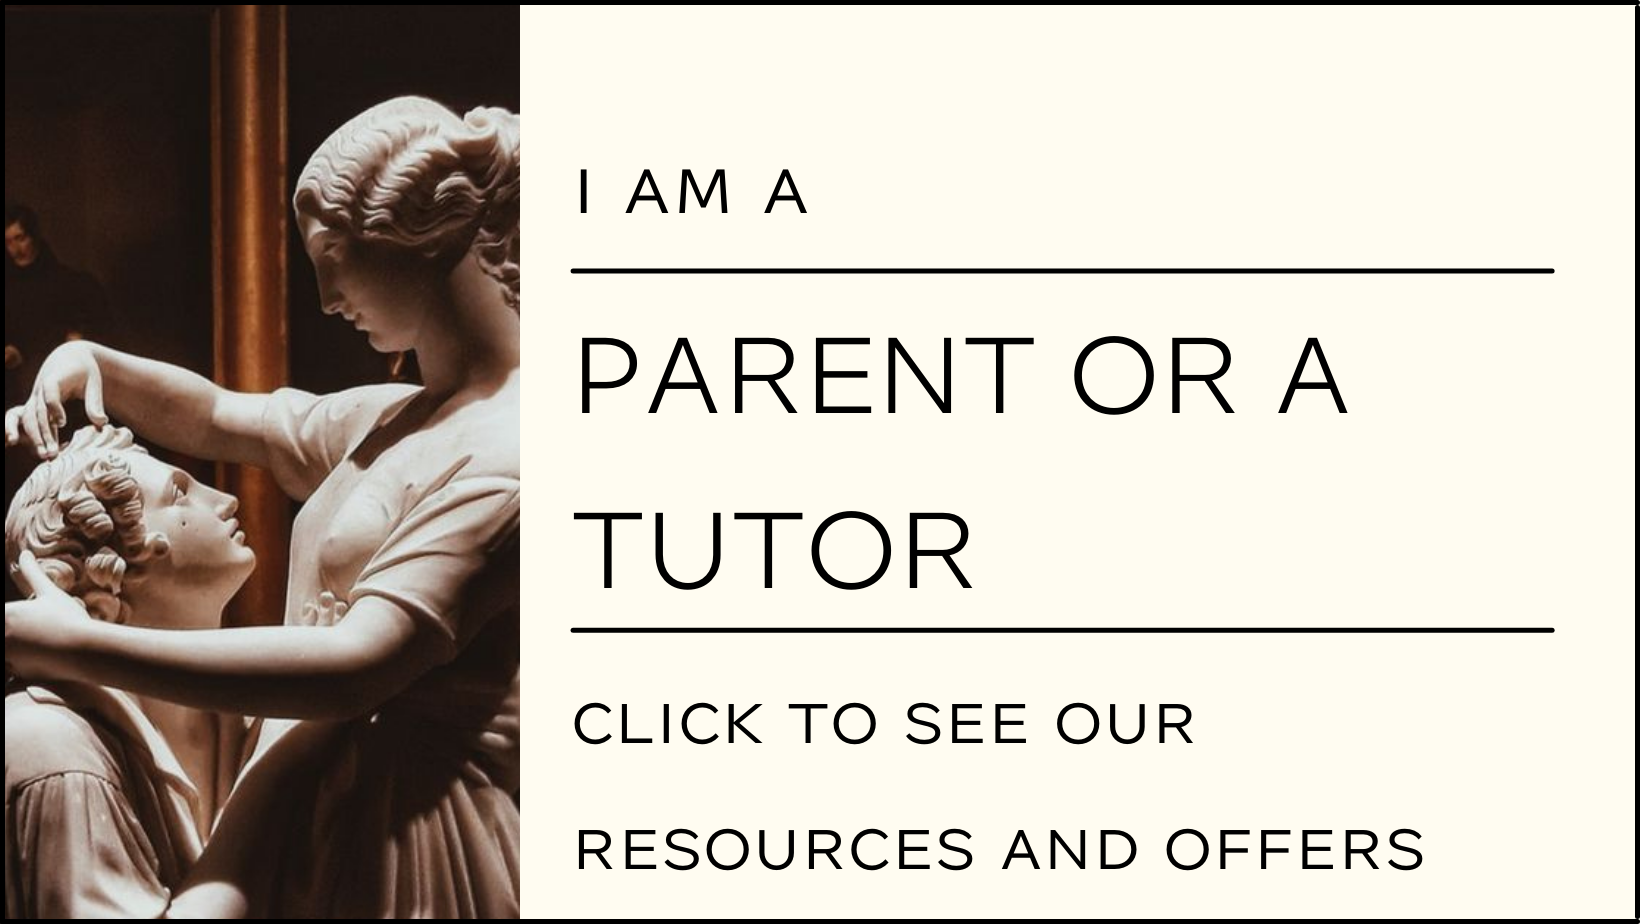 Writing Resources for Parents and Tutors